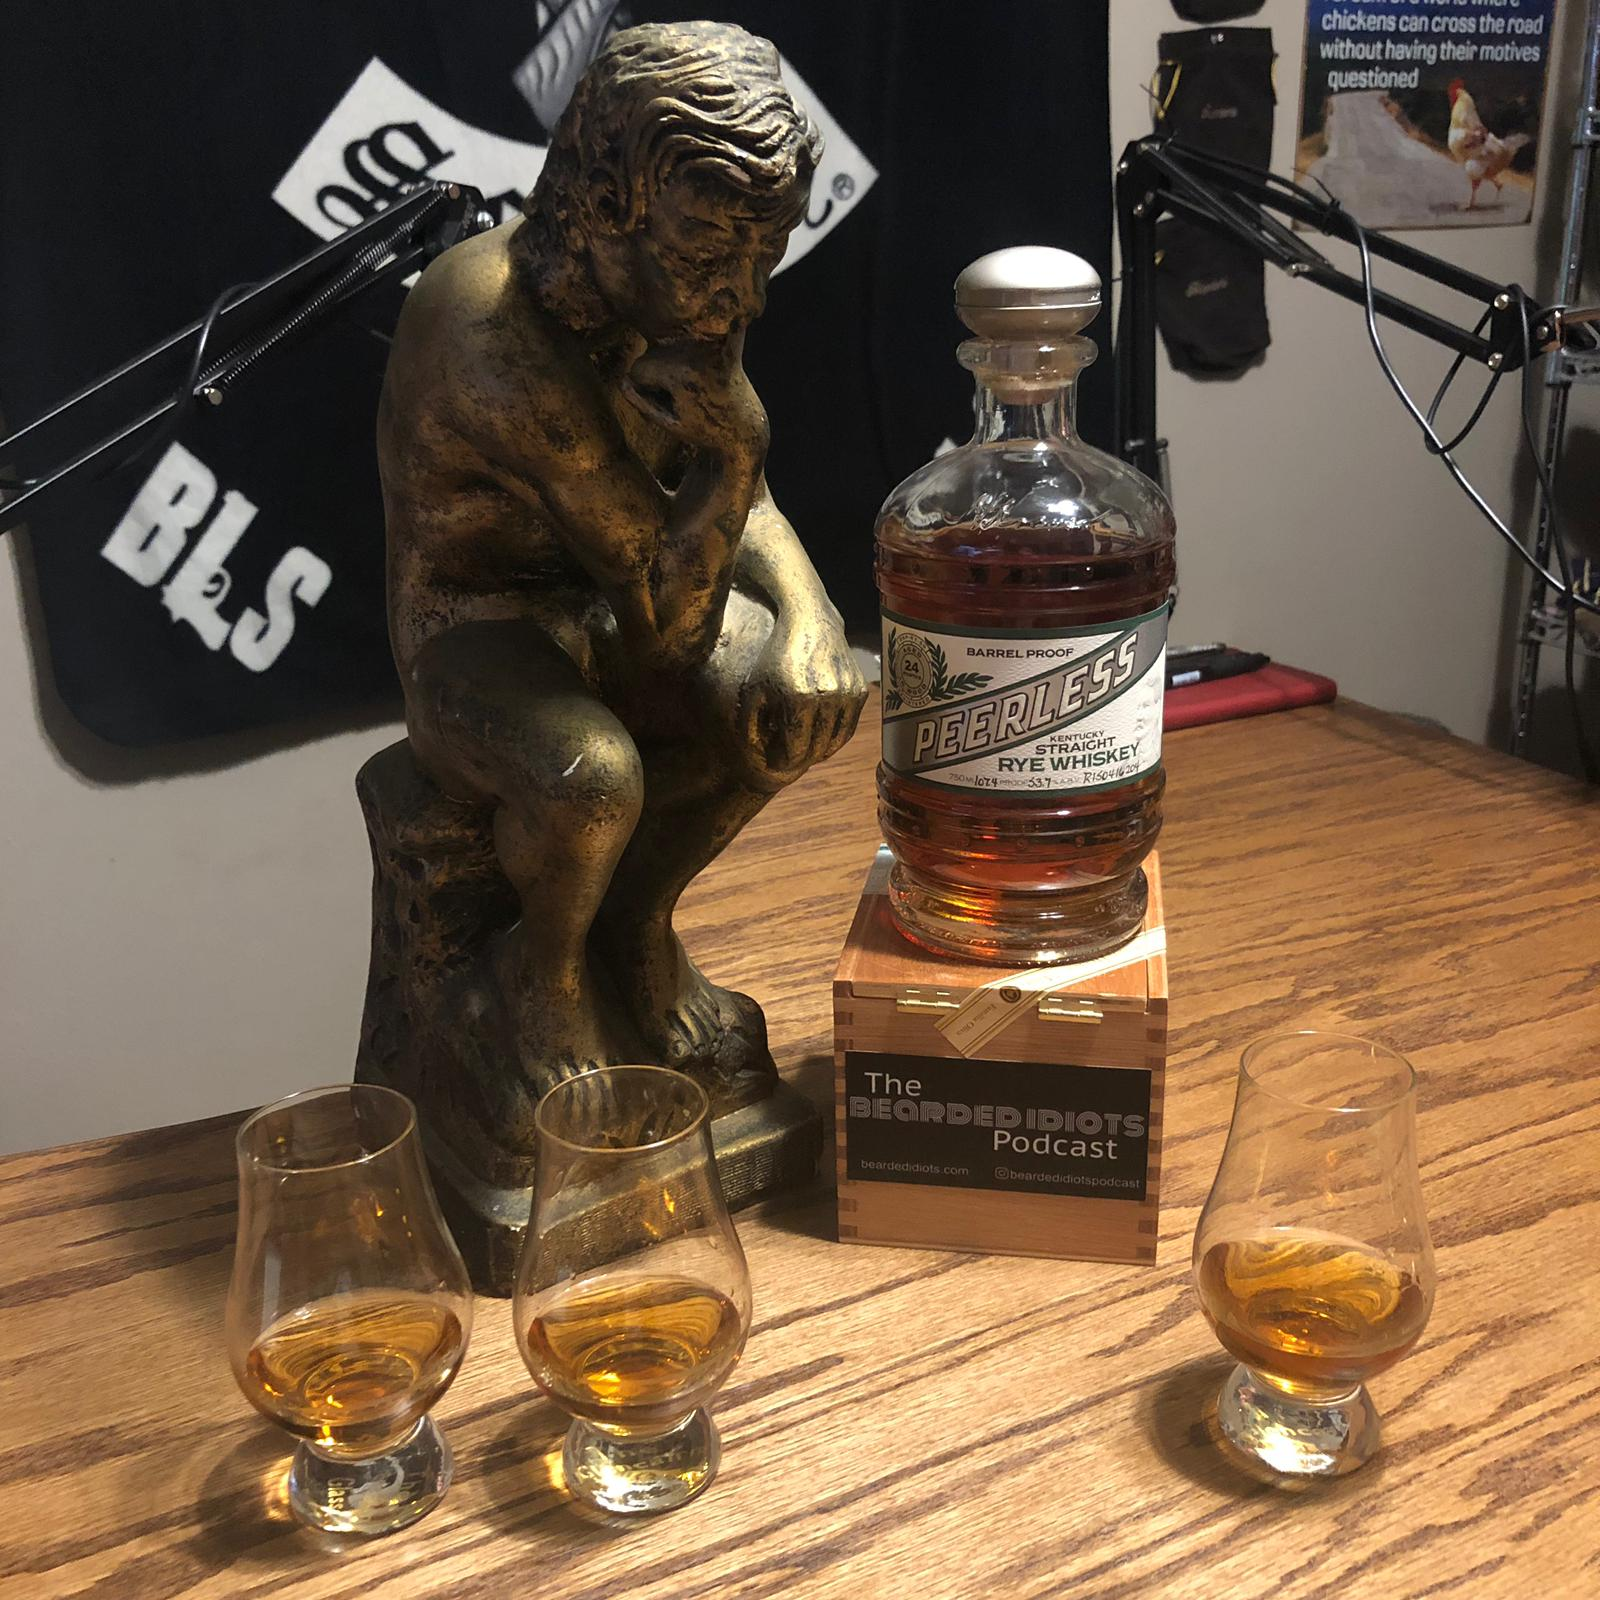 Episode the 62nd - Its A Trap! - A whiskey review, movies and porn